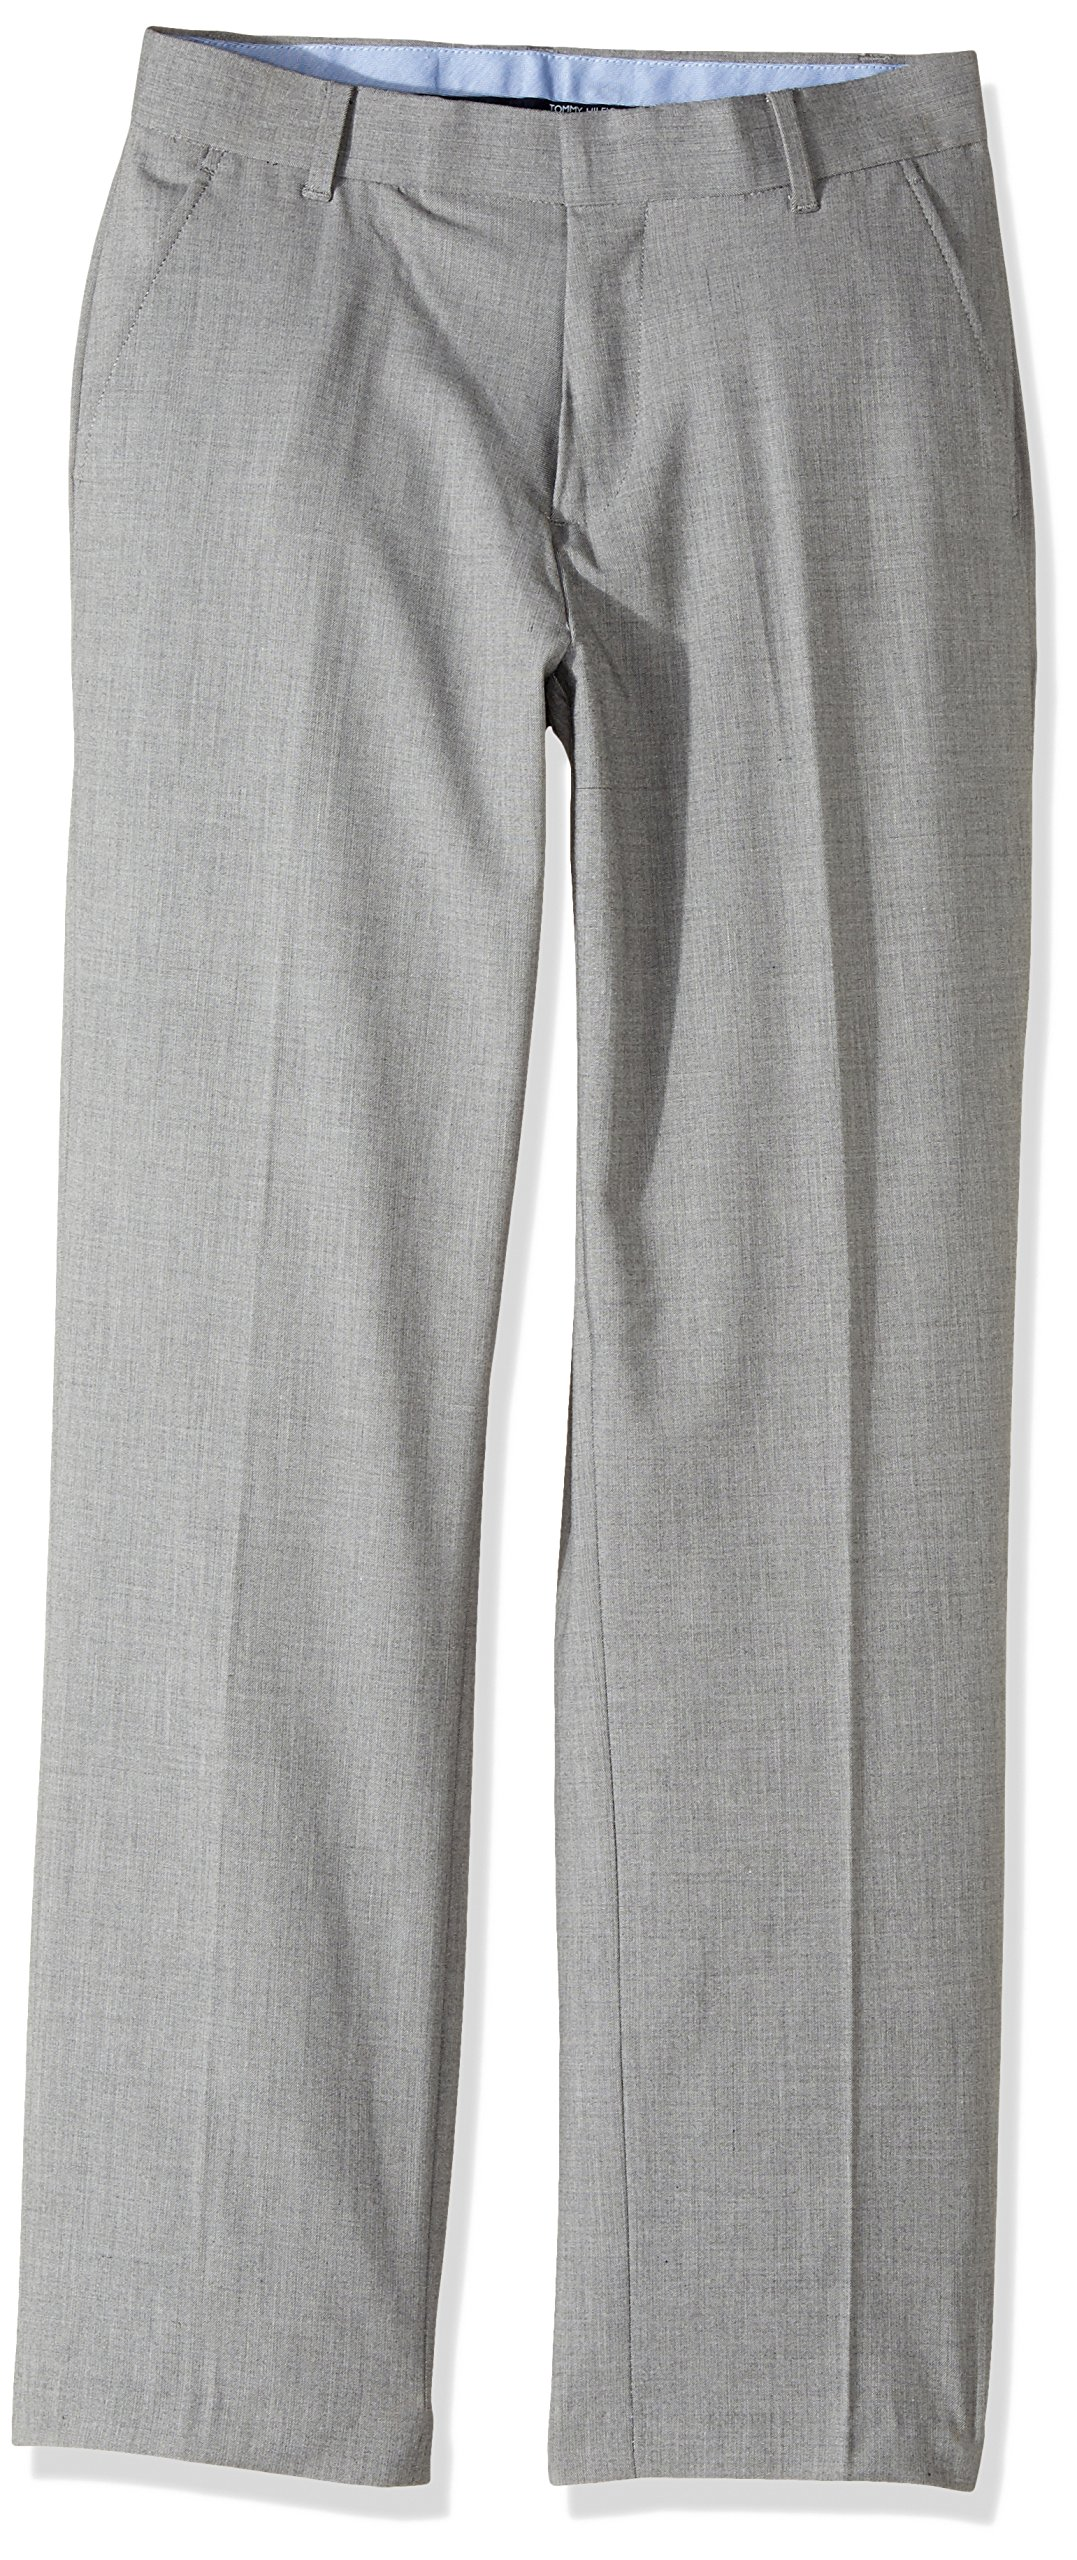 Tommy Hilfiger Big Boys' Flat Front Dress Pant, Light Grey, 14